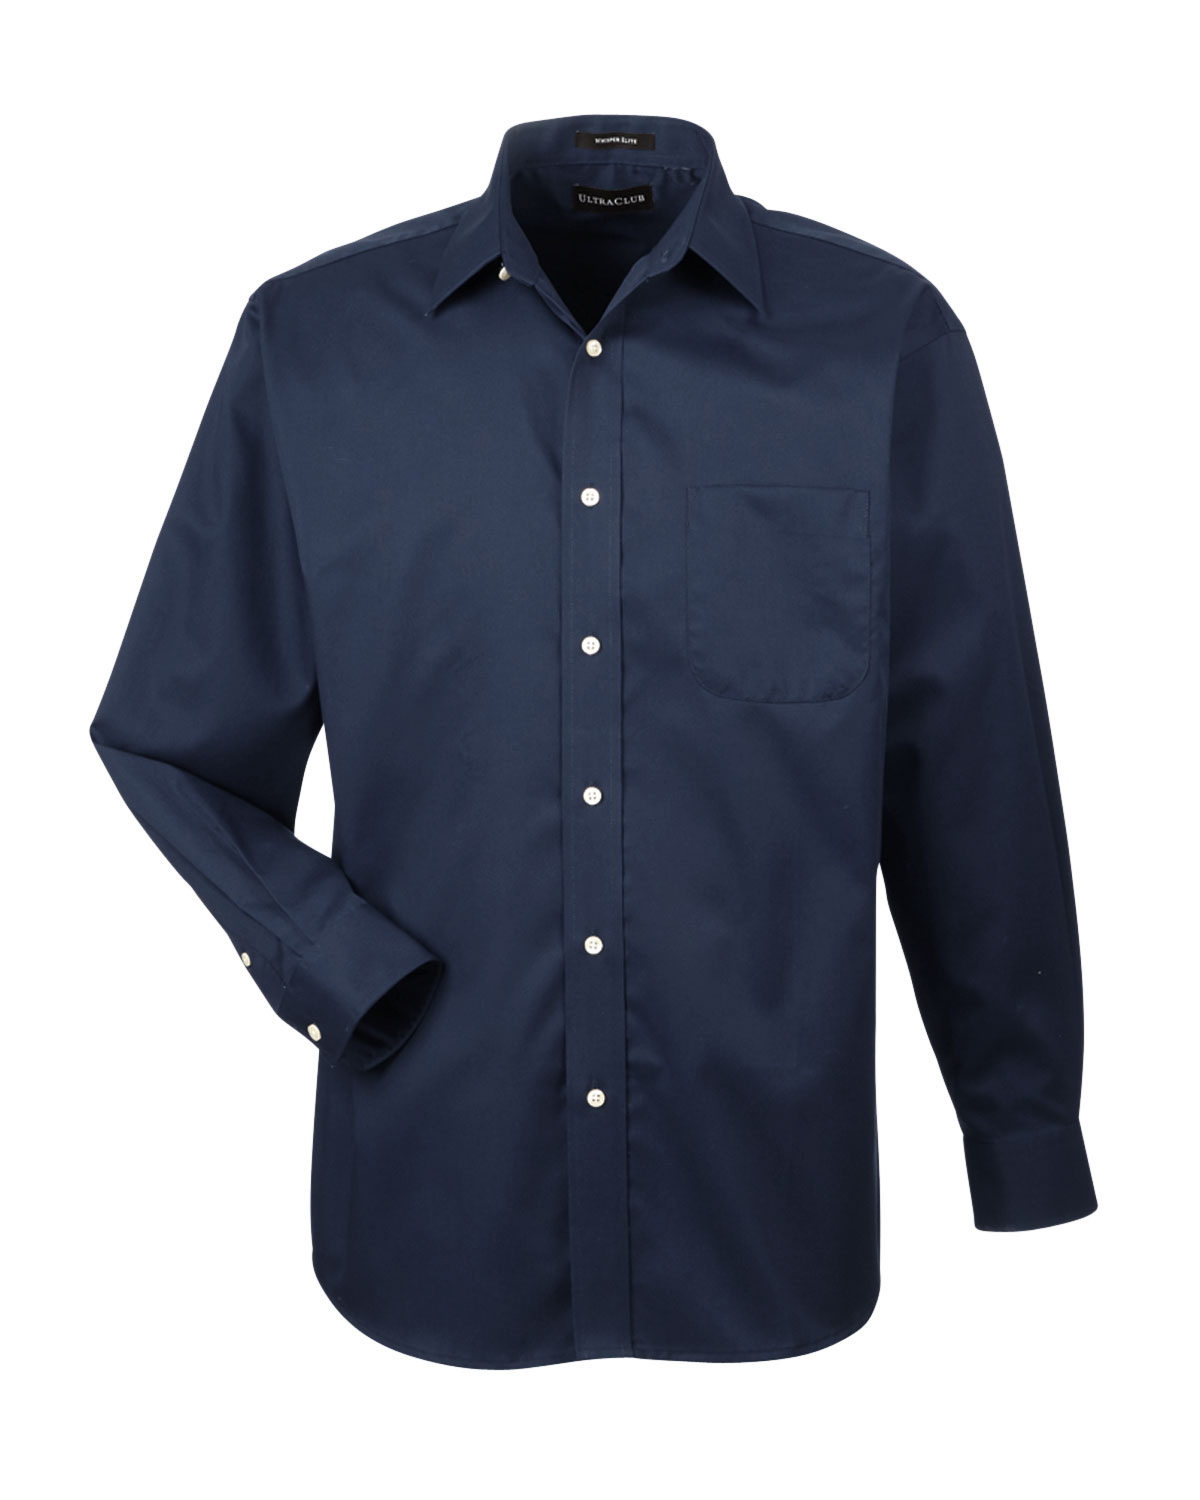 Mens Stain Resistant Whisper Elite Twill Shirt - Embroidered